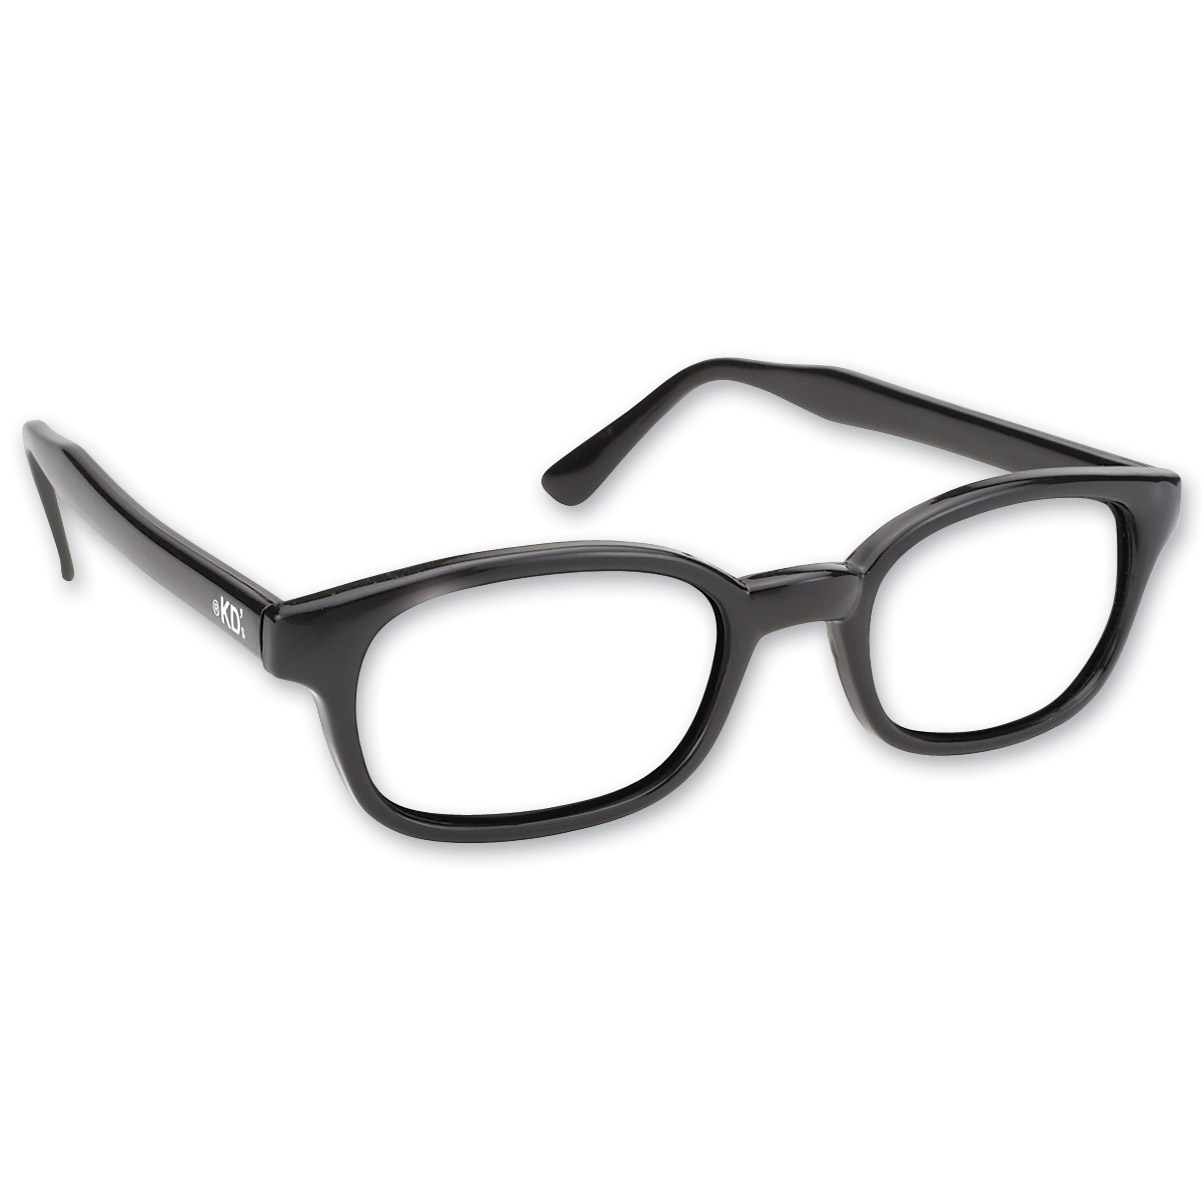 original kds sunglasses black frame with clear lens